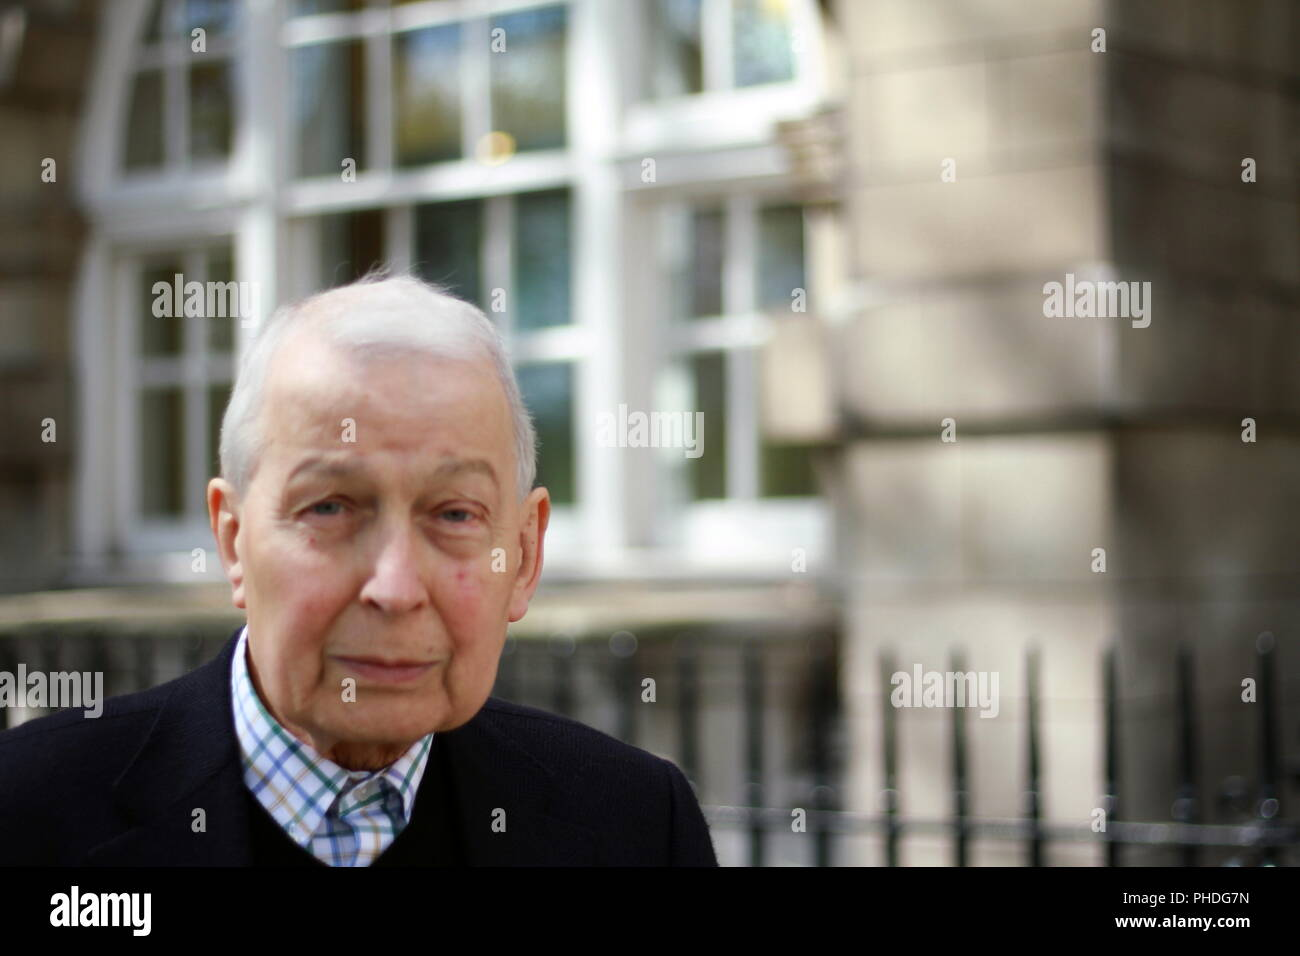 Frank Field Labour party MP member of parliament for Birkenhead. British politicians. Member of parliament of the United Kingdom since 1979. Russell Moore portfolio page. Stock Photo